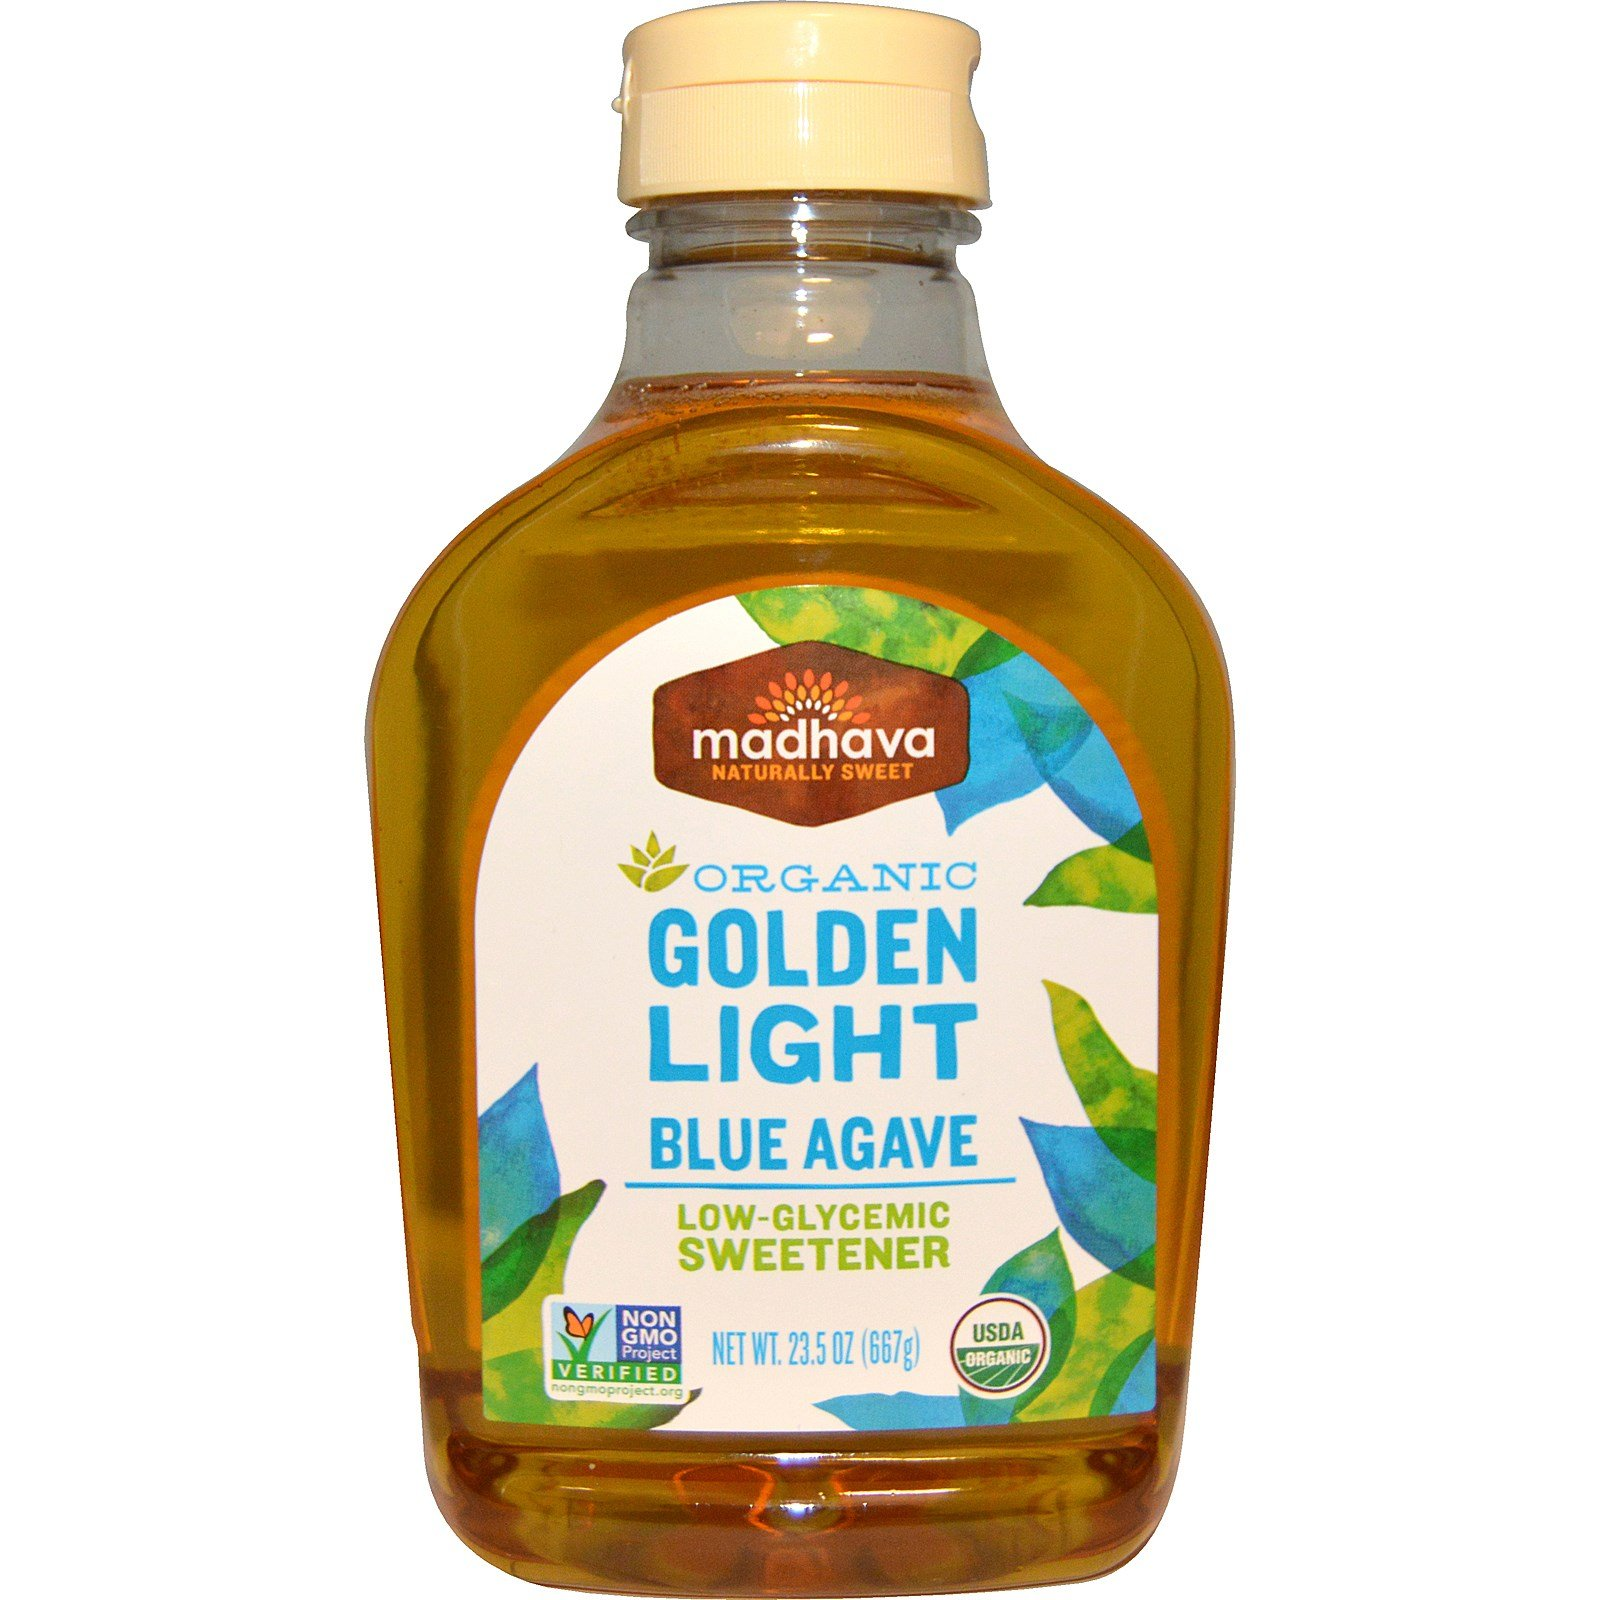 Madhava Natural Sweeteners, Organic, Golden Light, Blue Agave, Low-Glycemic Sweetener, 23.5 oz (667 g) - 2pc